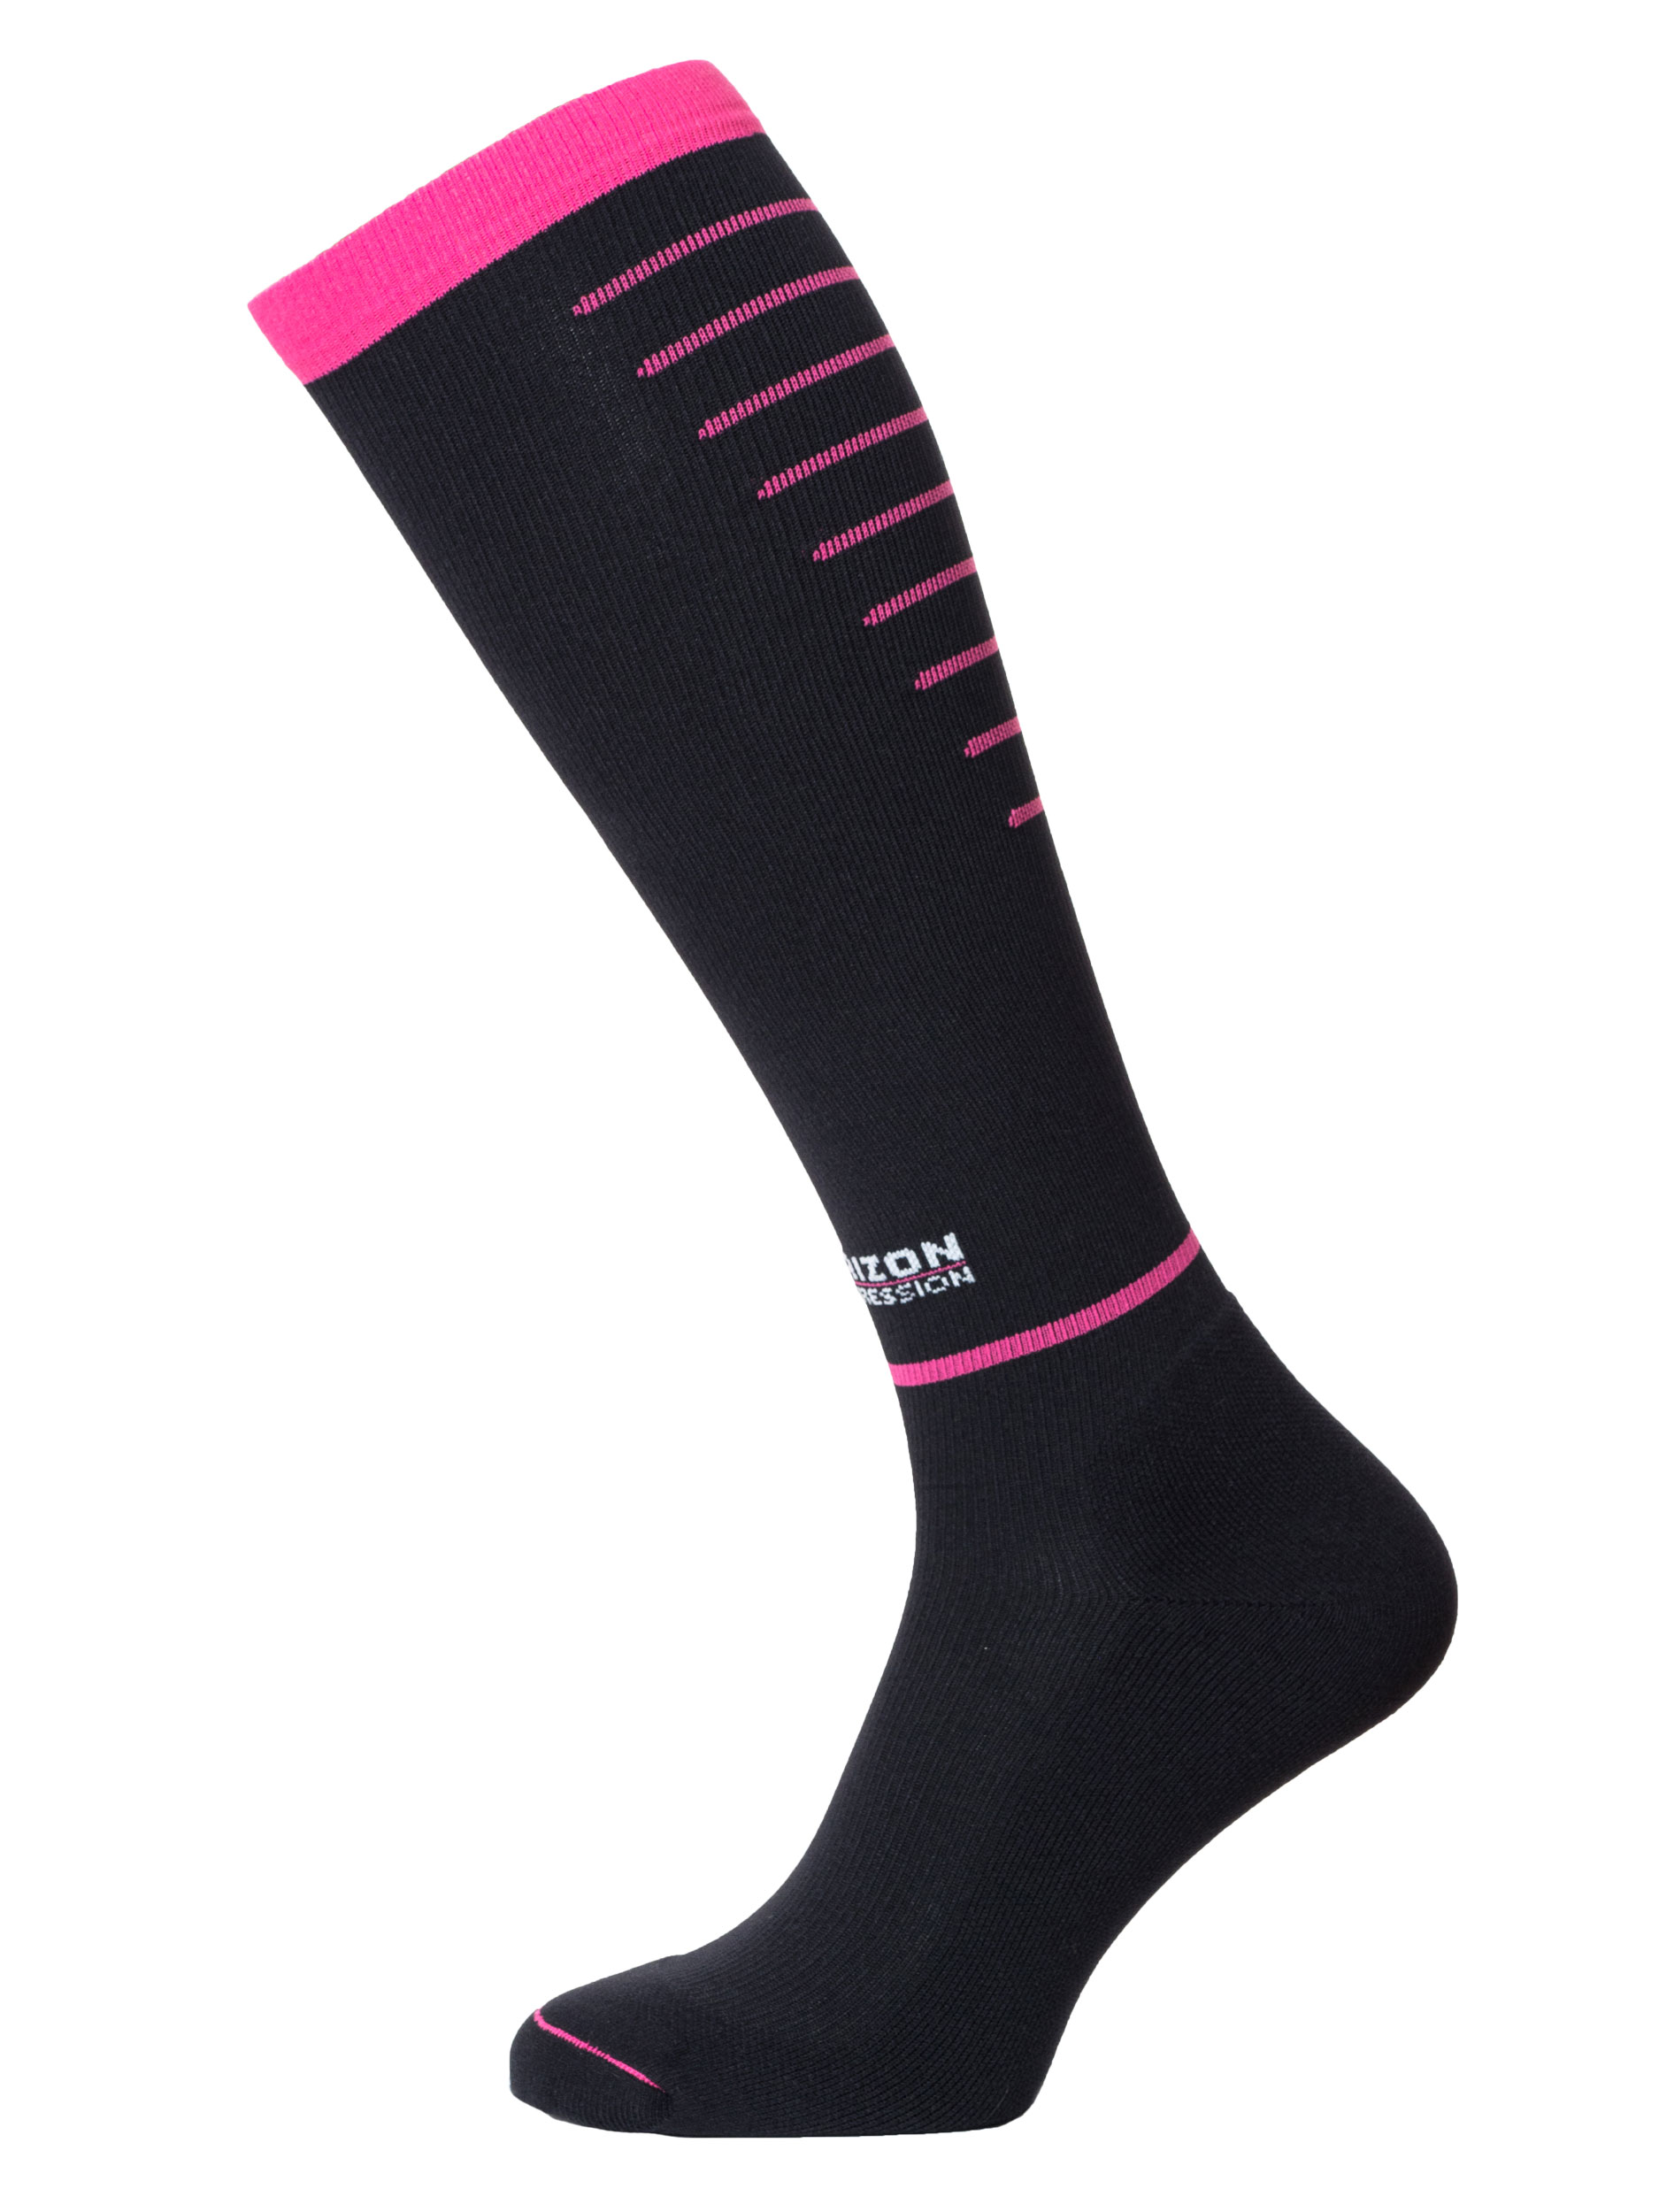 Compression Over Calf Black/Cerise